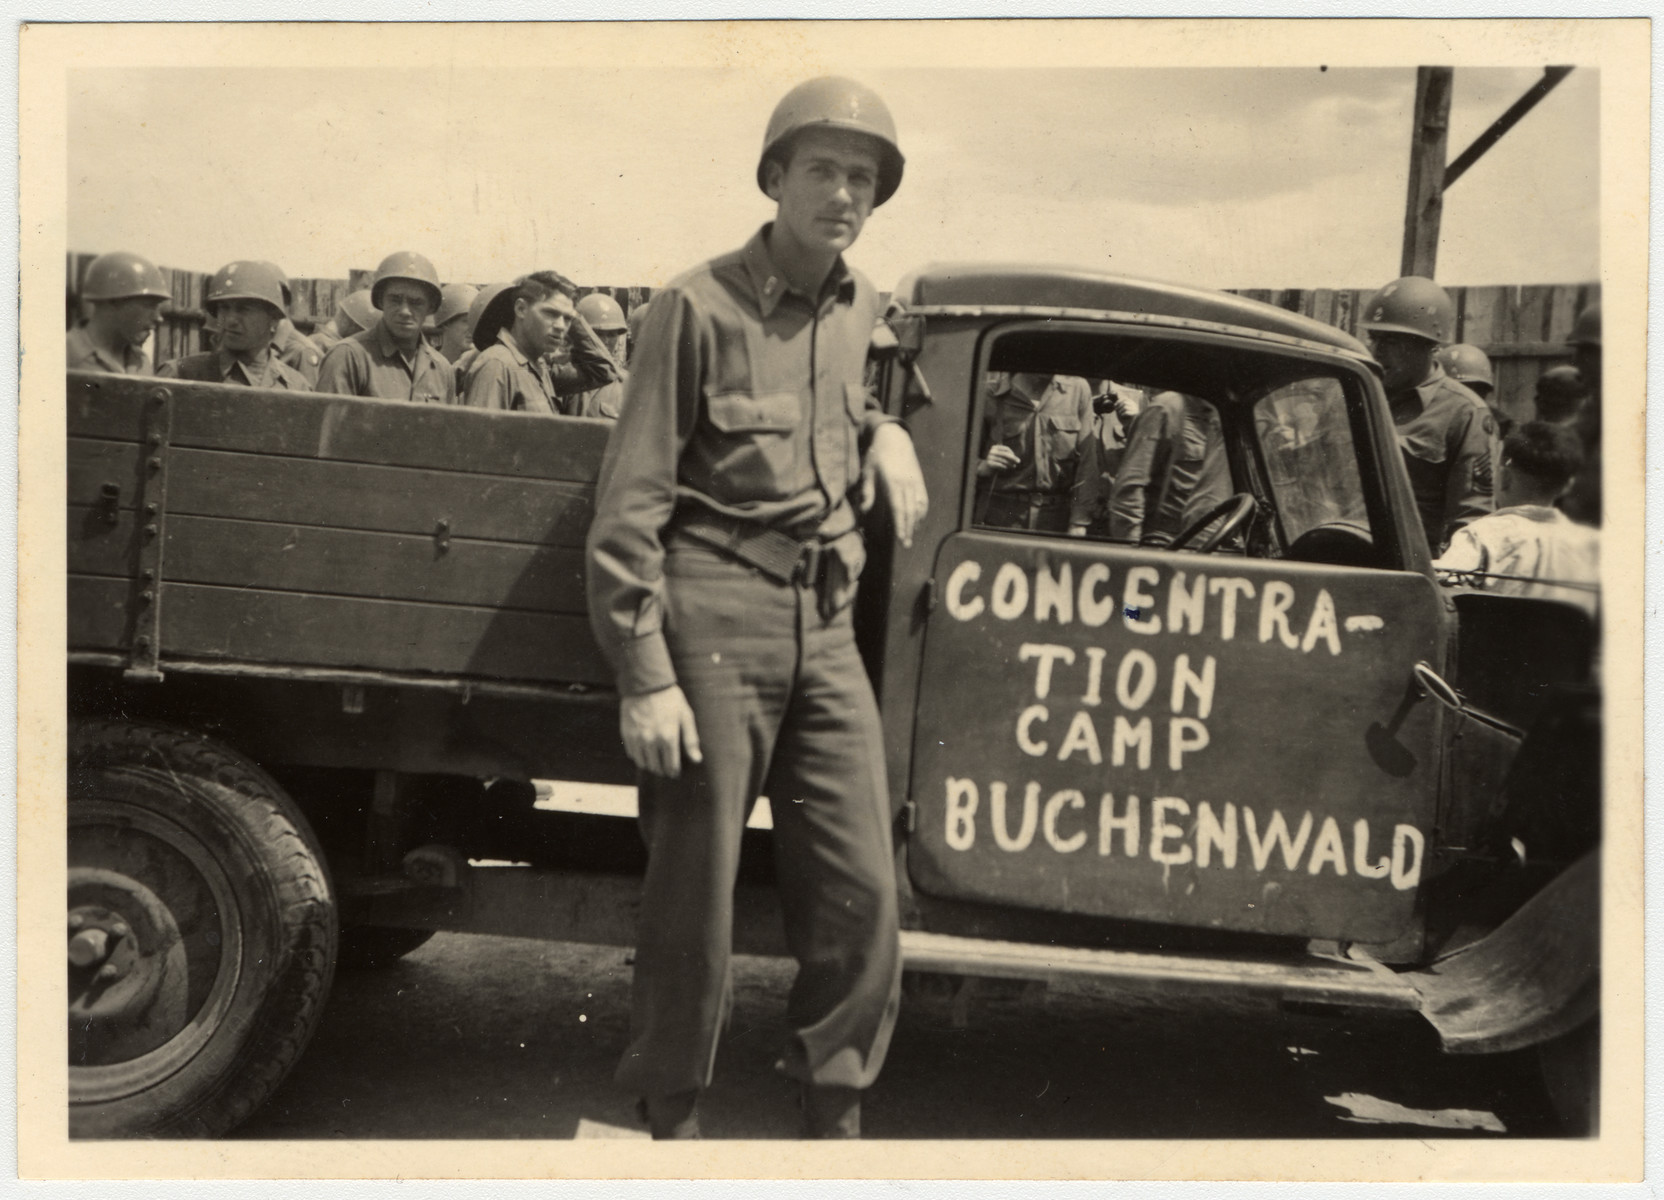 """An American soldier stands in front of a truck labeled """"Concentration Camp Buchenwald."""""""